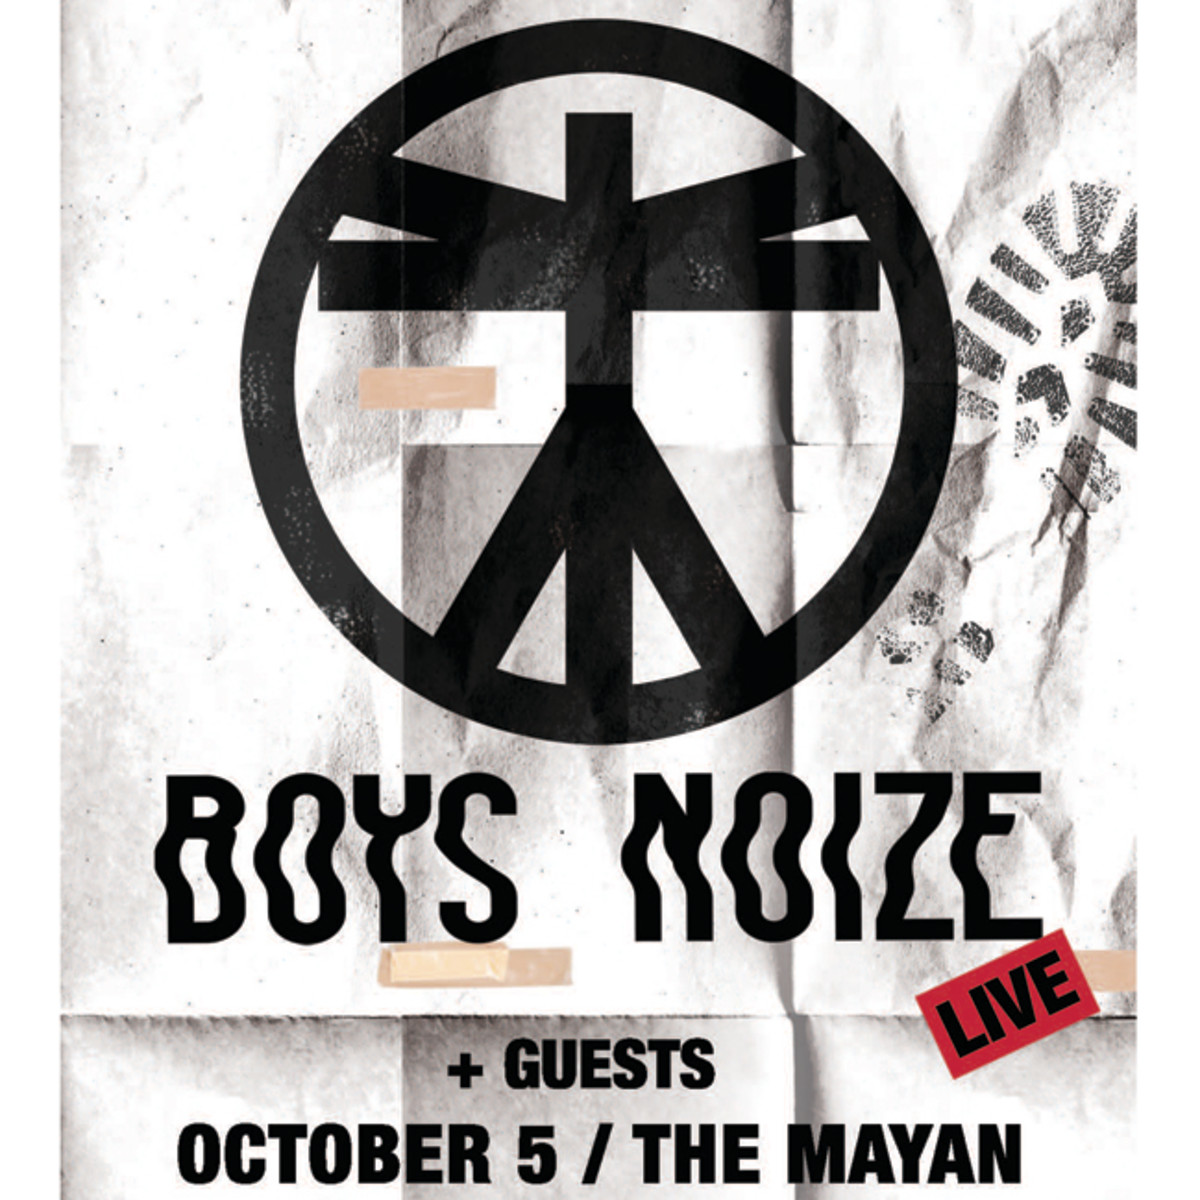 Buy Boys Noize Tickets Here